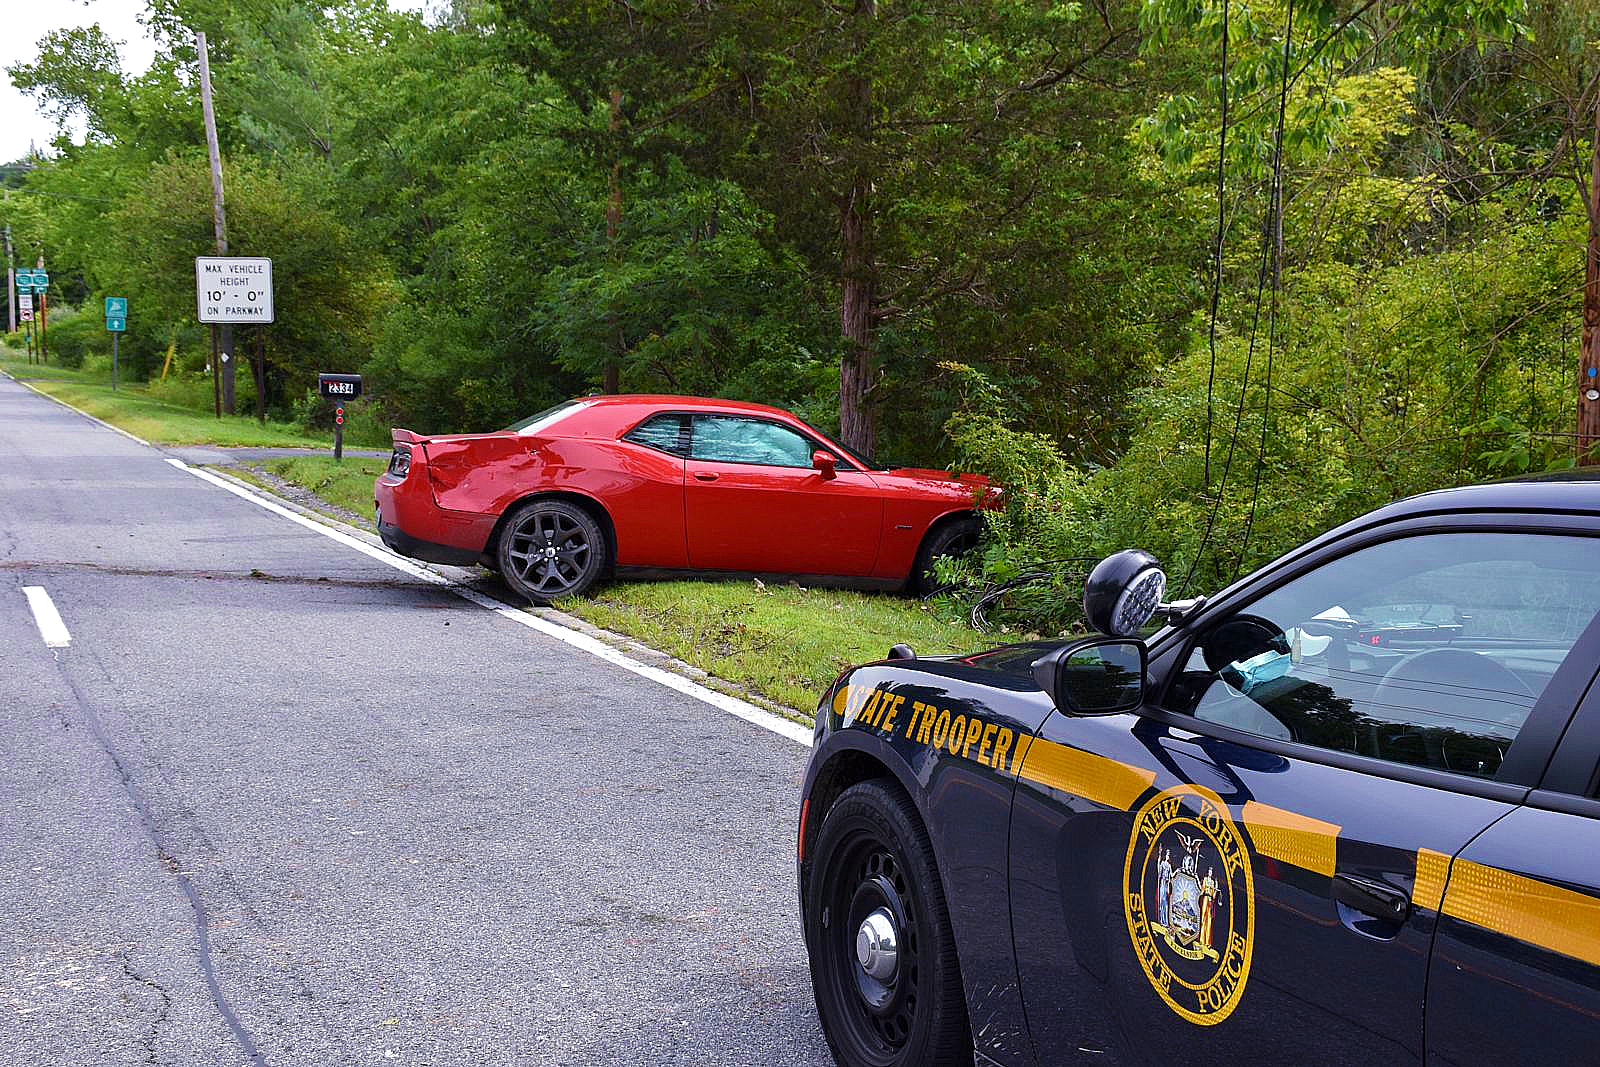 State police on the scene of a collision involving a red car